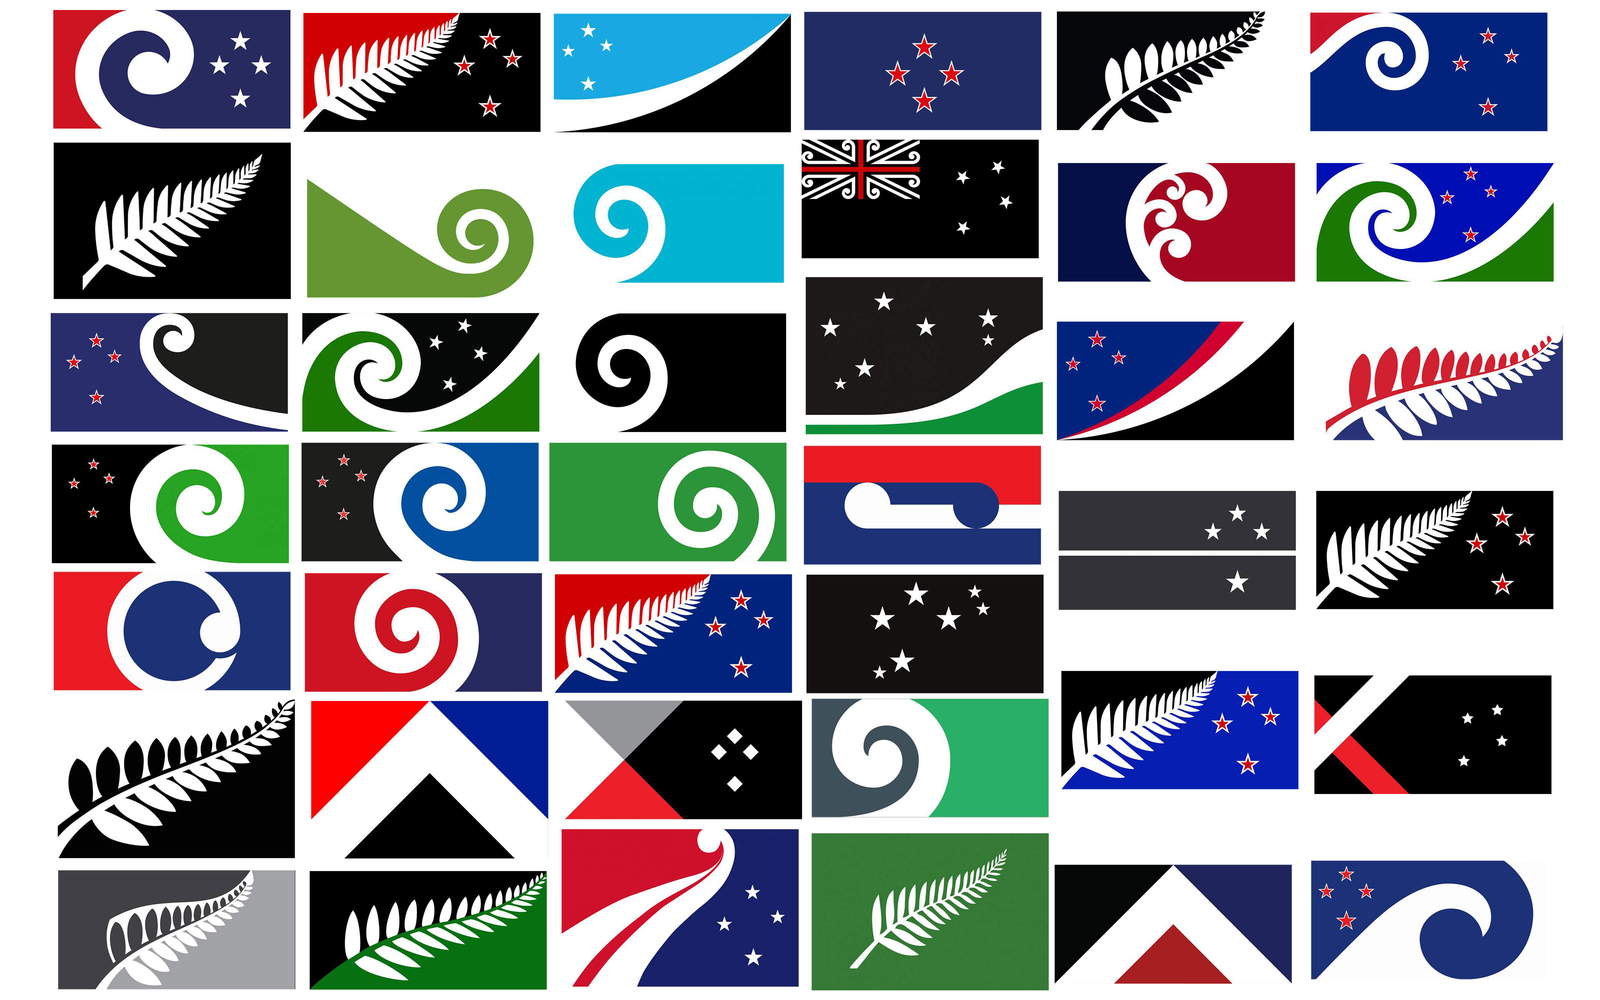 newzealand0815-flag-proposals.jpg